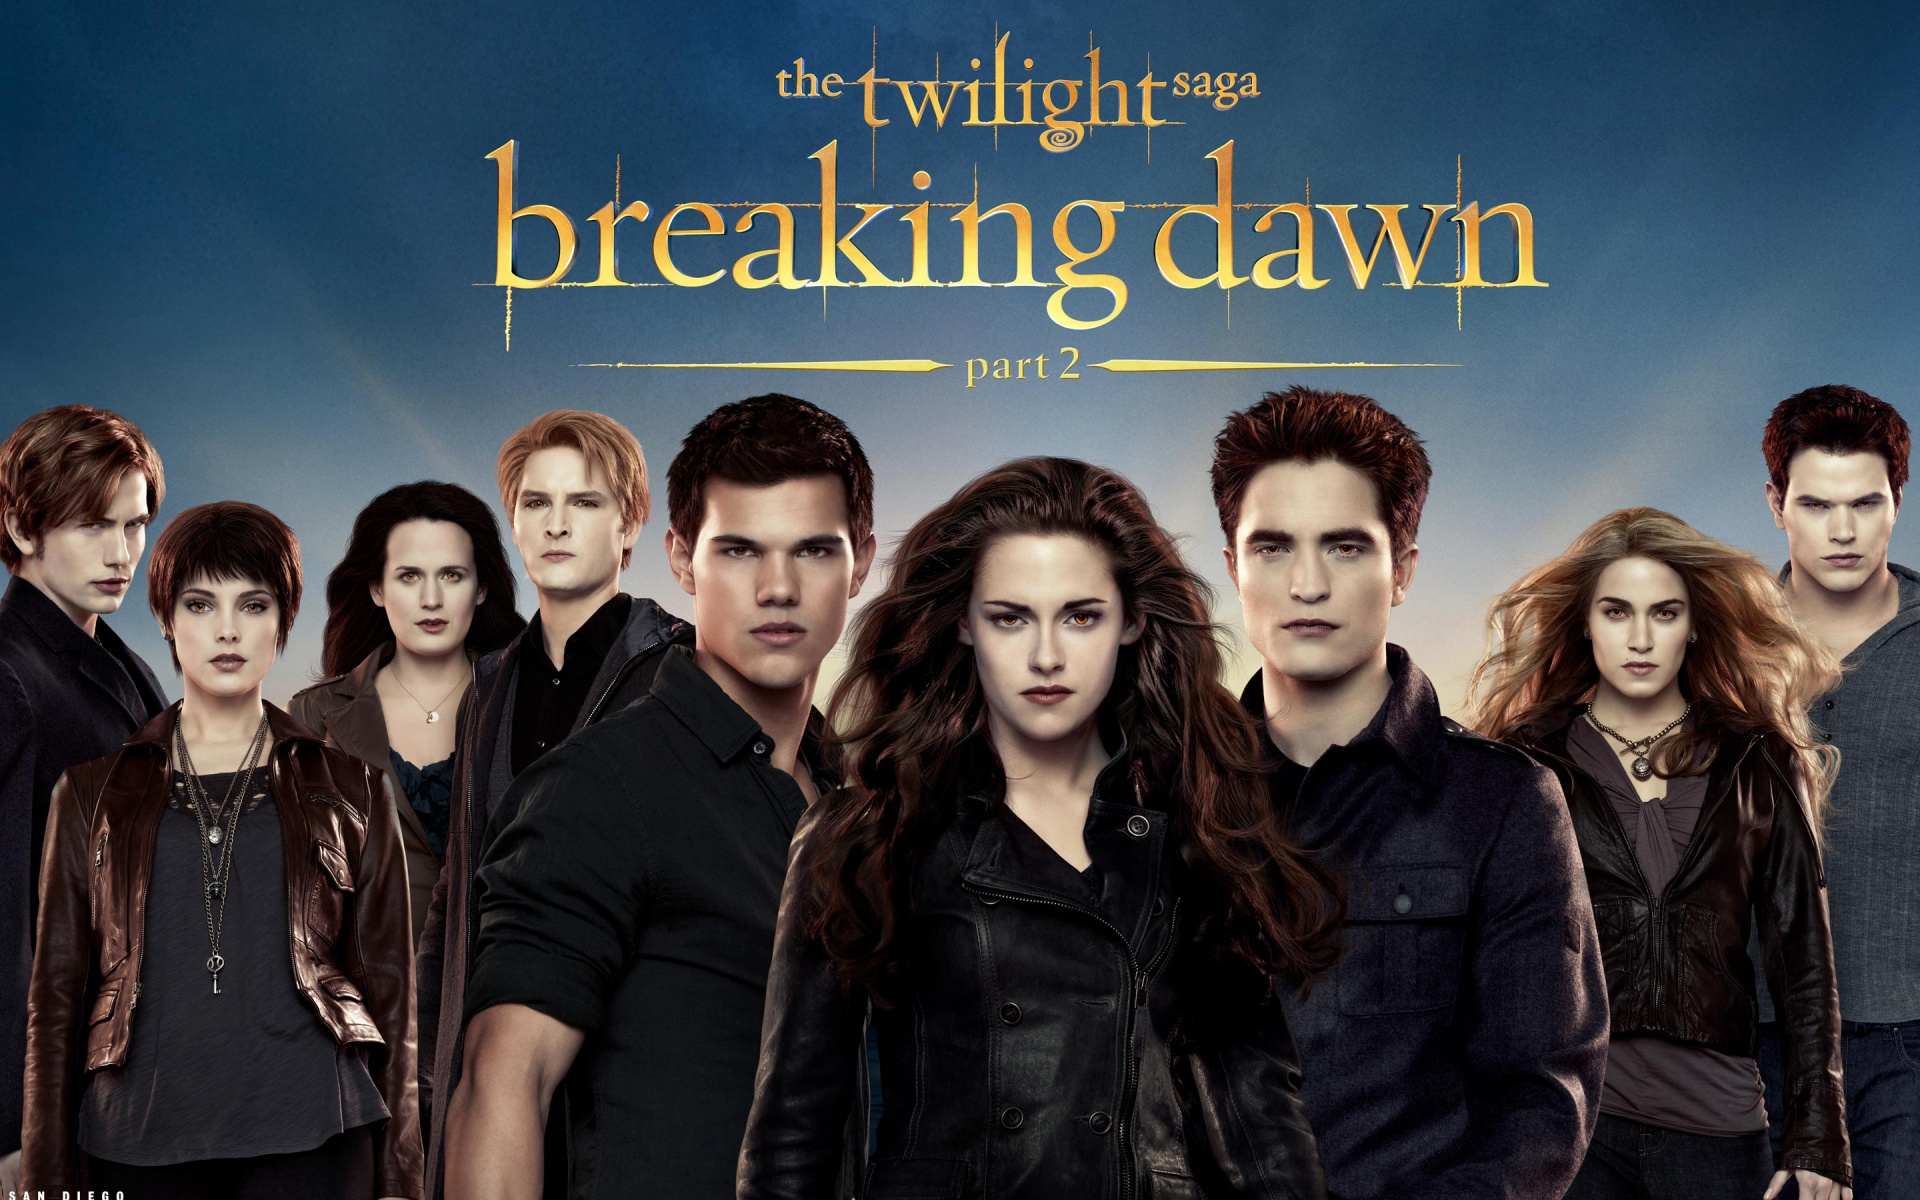 Download twilight breaking dawn part 1 in hindi from movies.